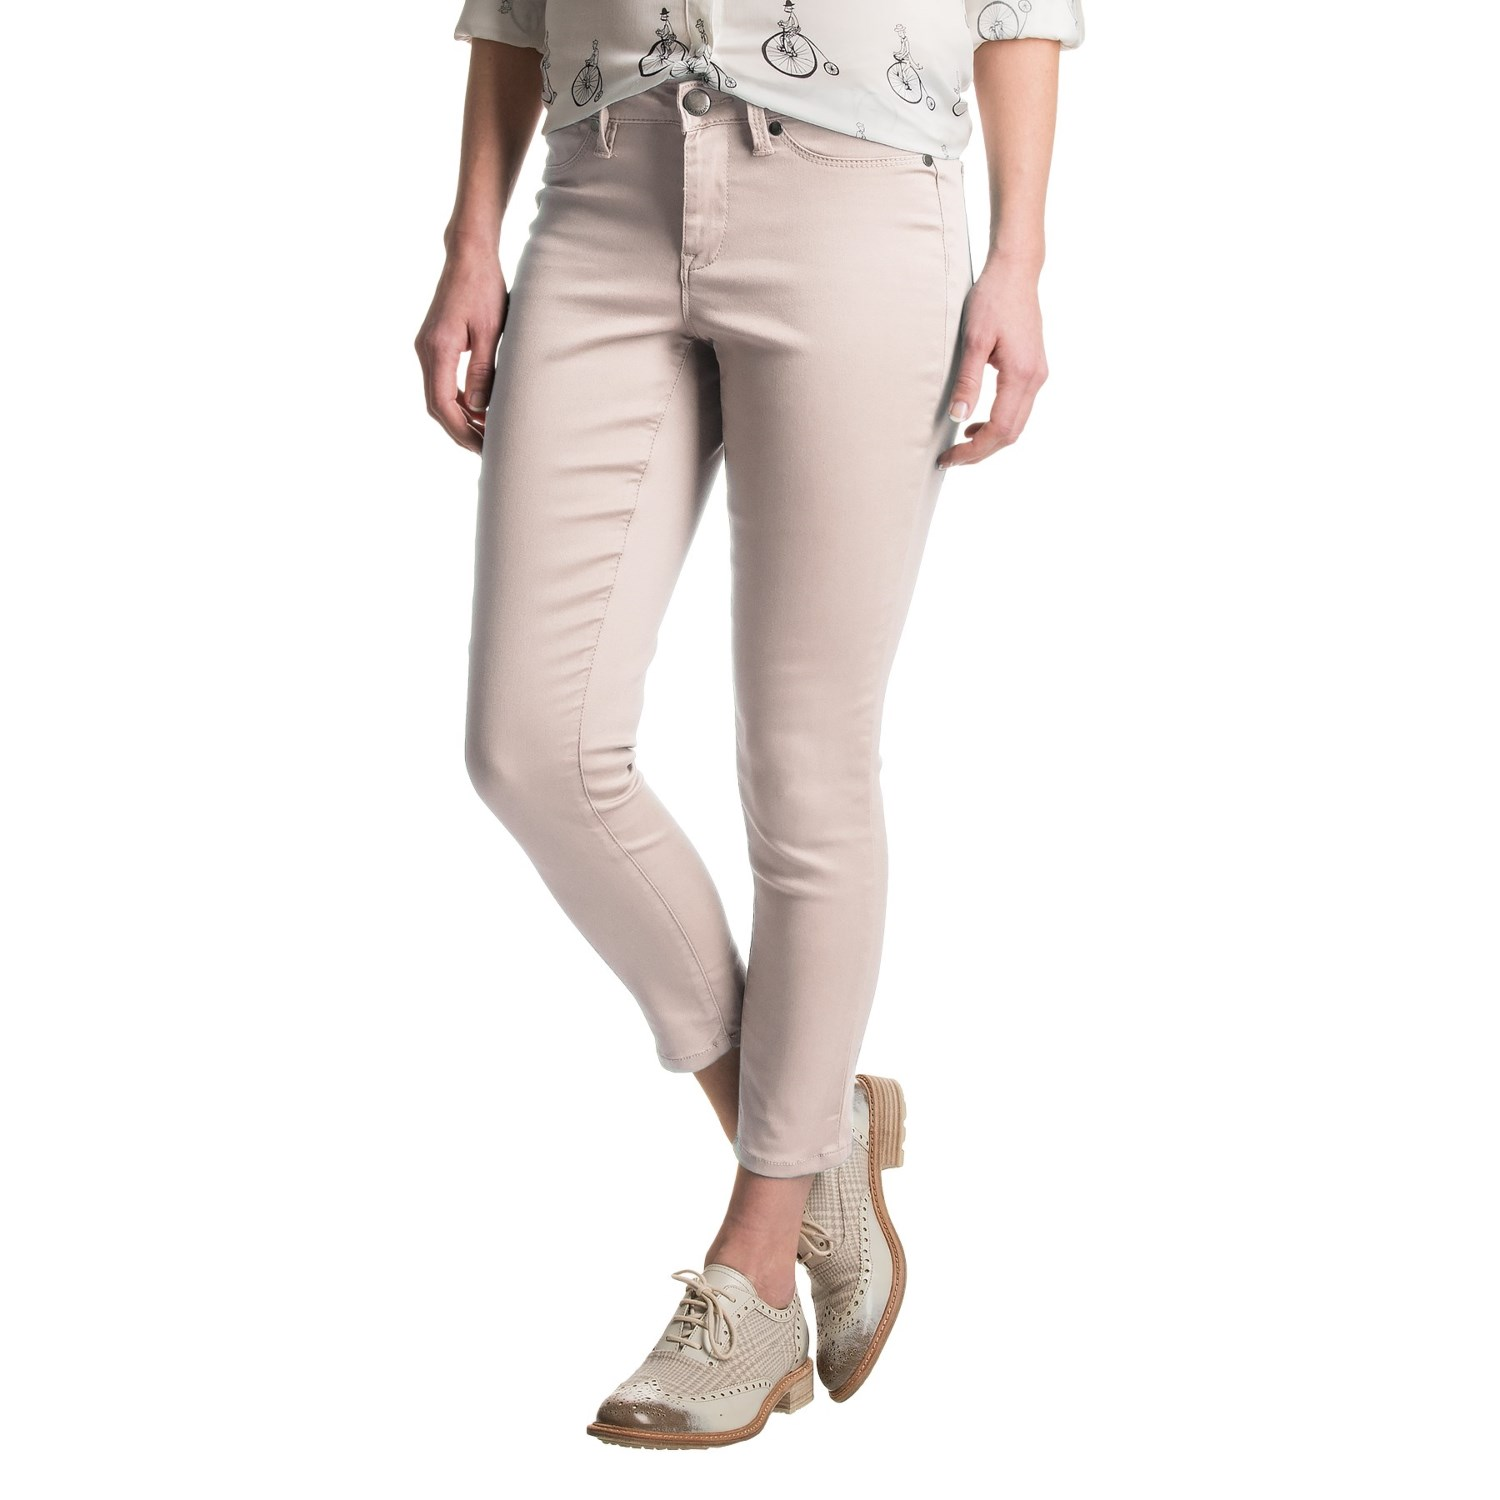 Max Jeans Skinny Capris (For Women) 211PK - Save 87%